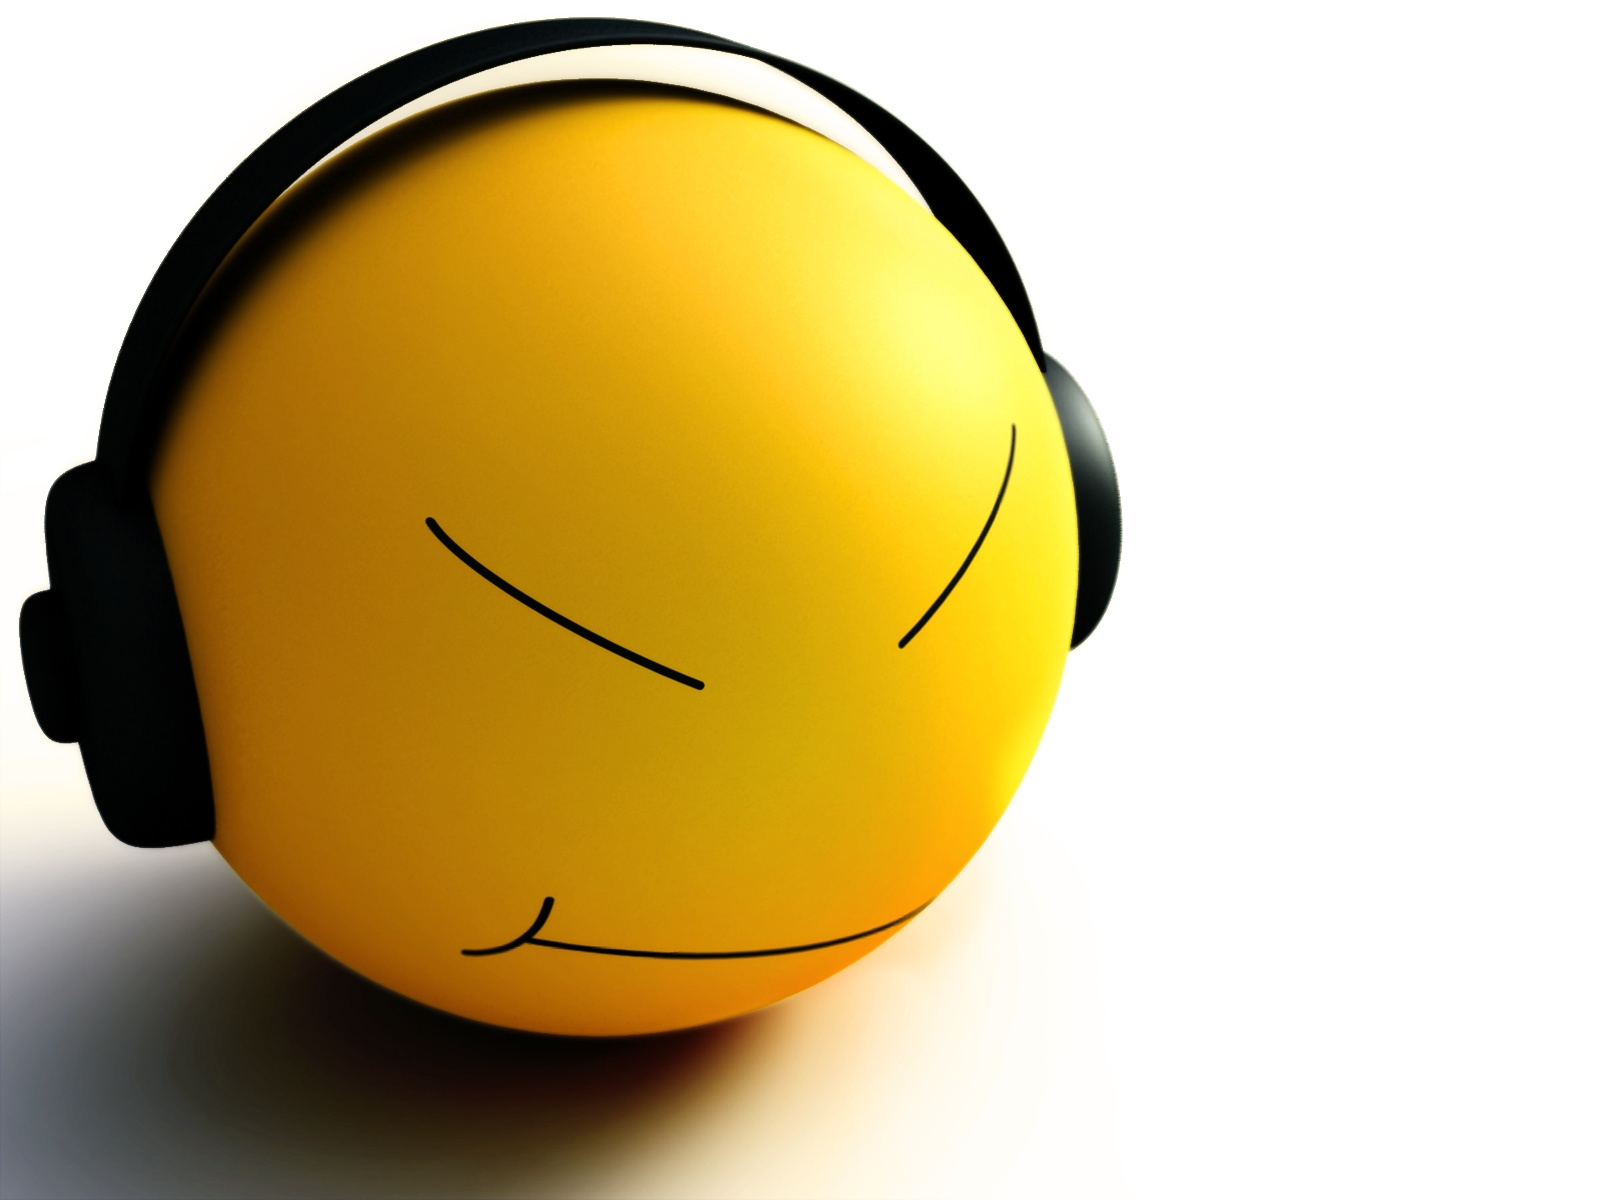 smiley listen music wallpapers in jpg format for free download